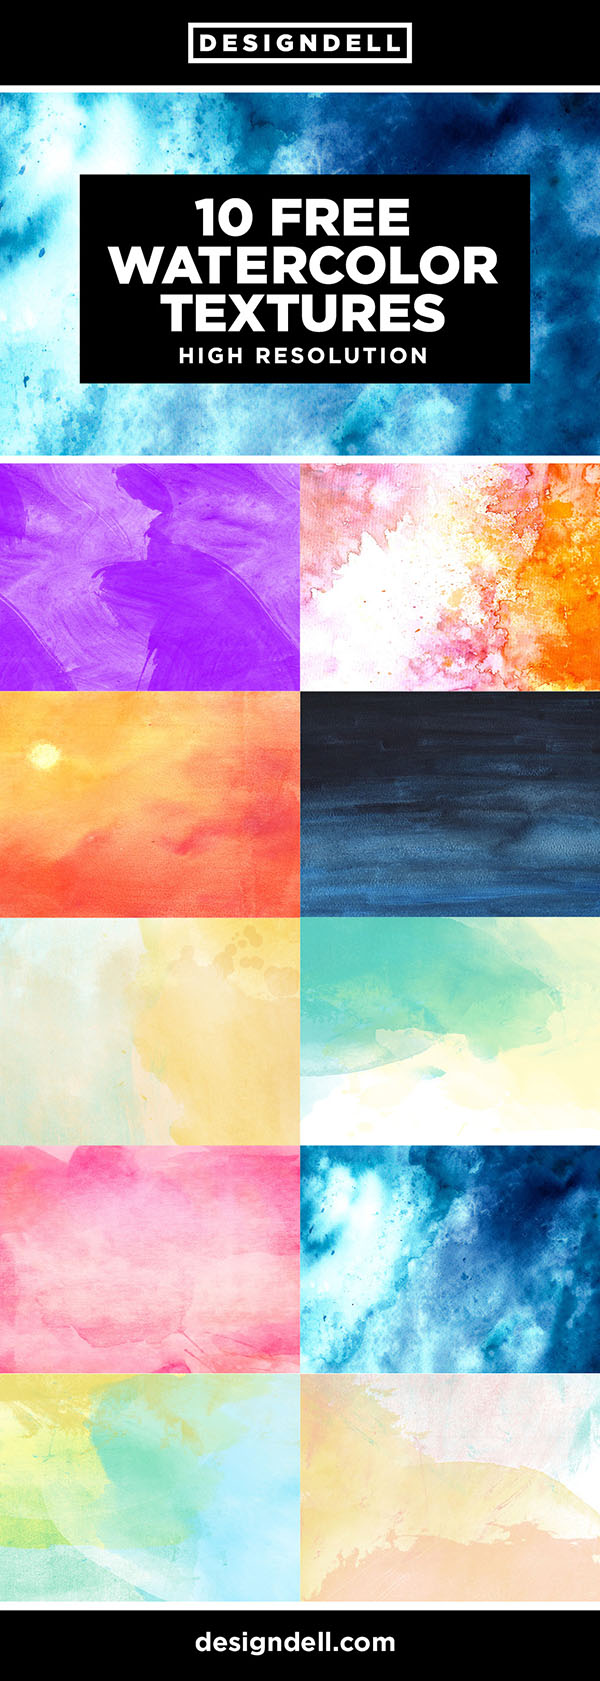 10 FREE Watercolor Textures - Download here!